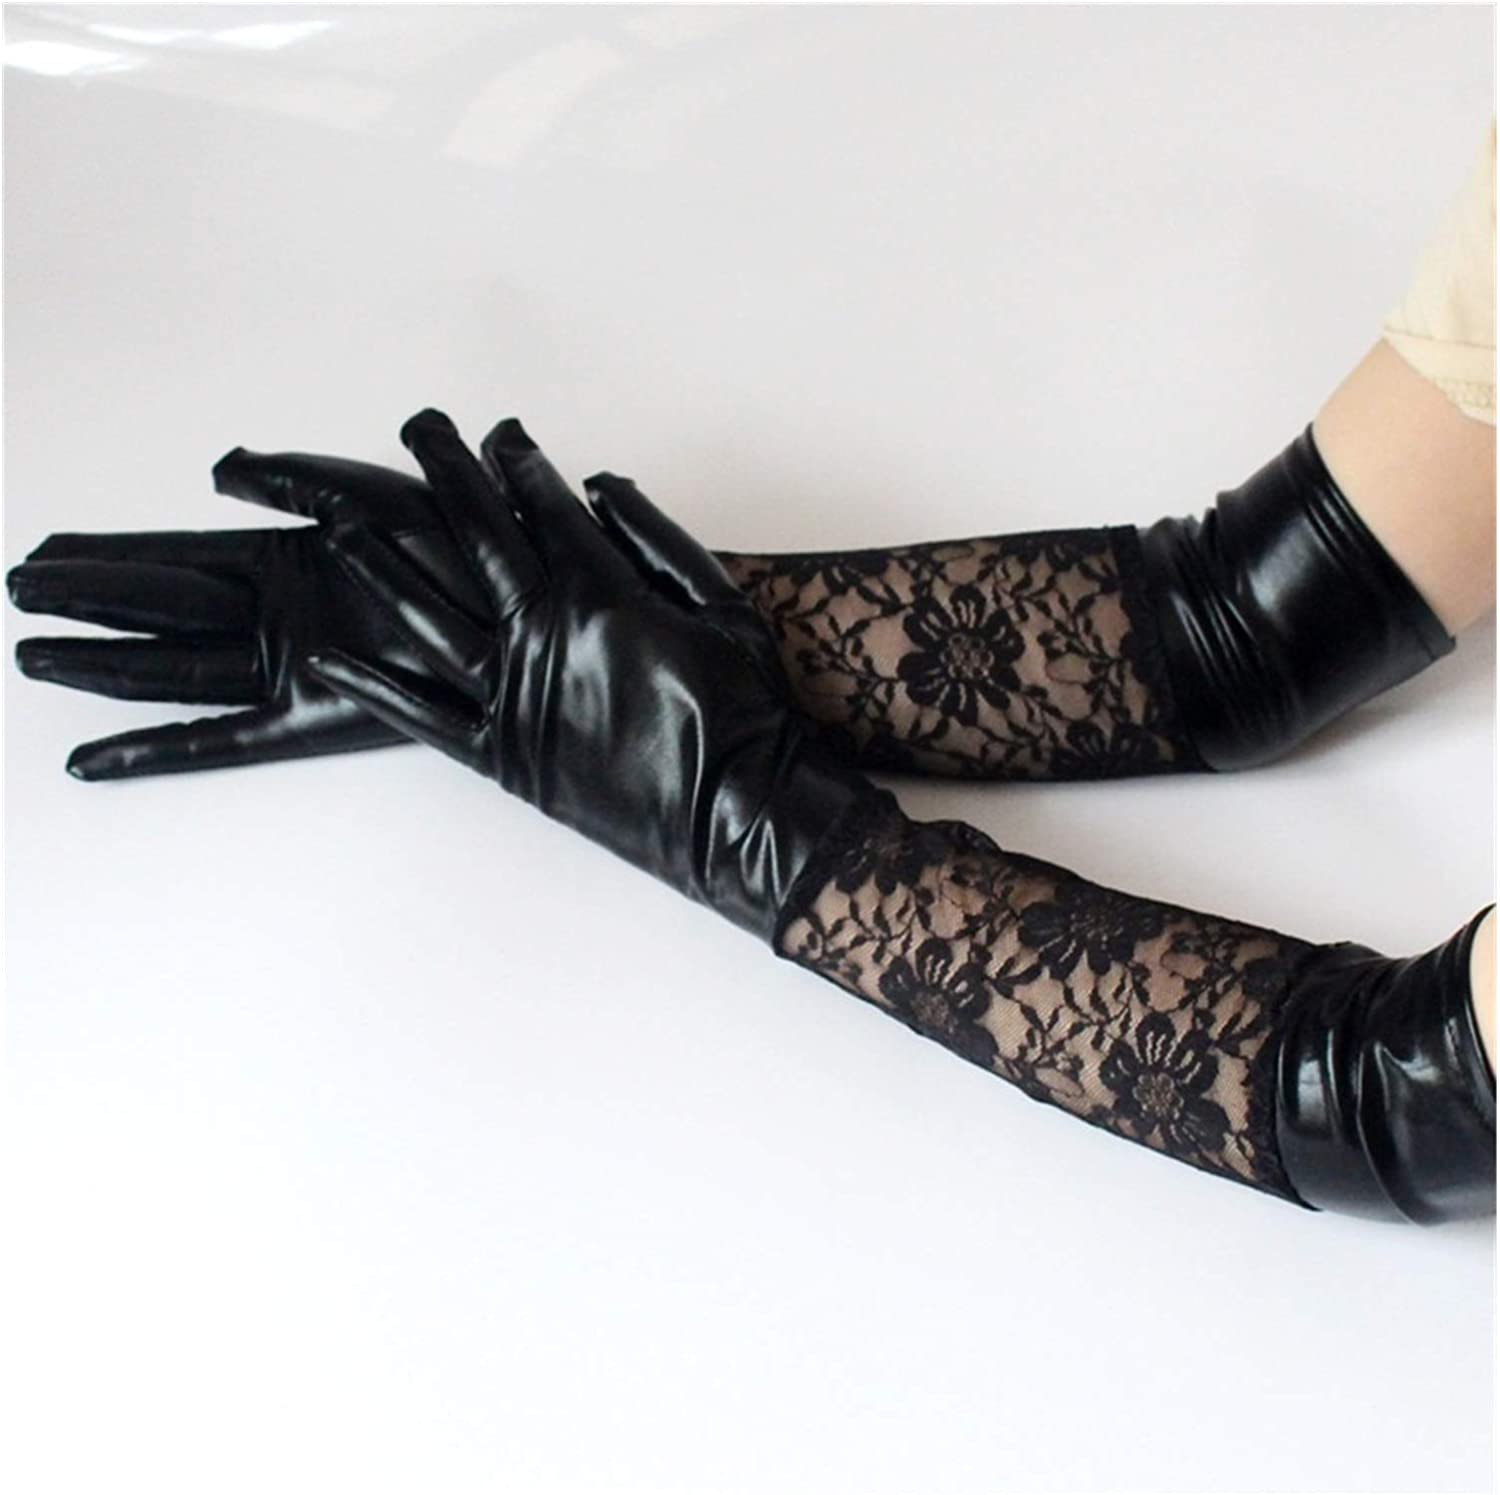 JBIVWW Sexy Lace Faux Leather Long Gloves Black Ladies Full-Finger Etiquette Performance Party Gloves Harajuku Cosplay (Color : Black, Gloves Size : One Size)